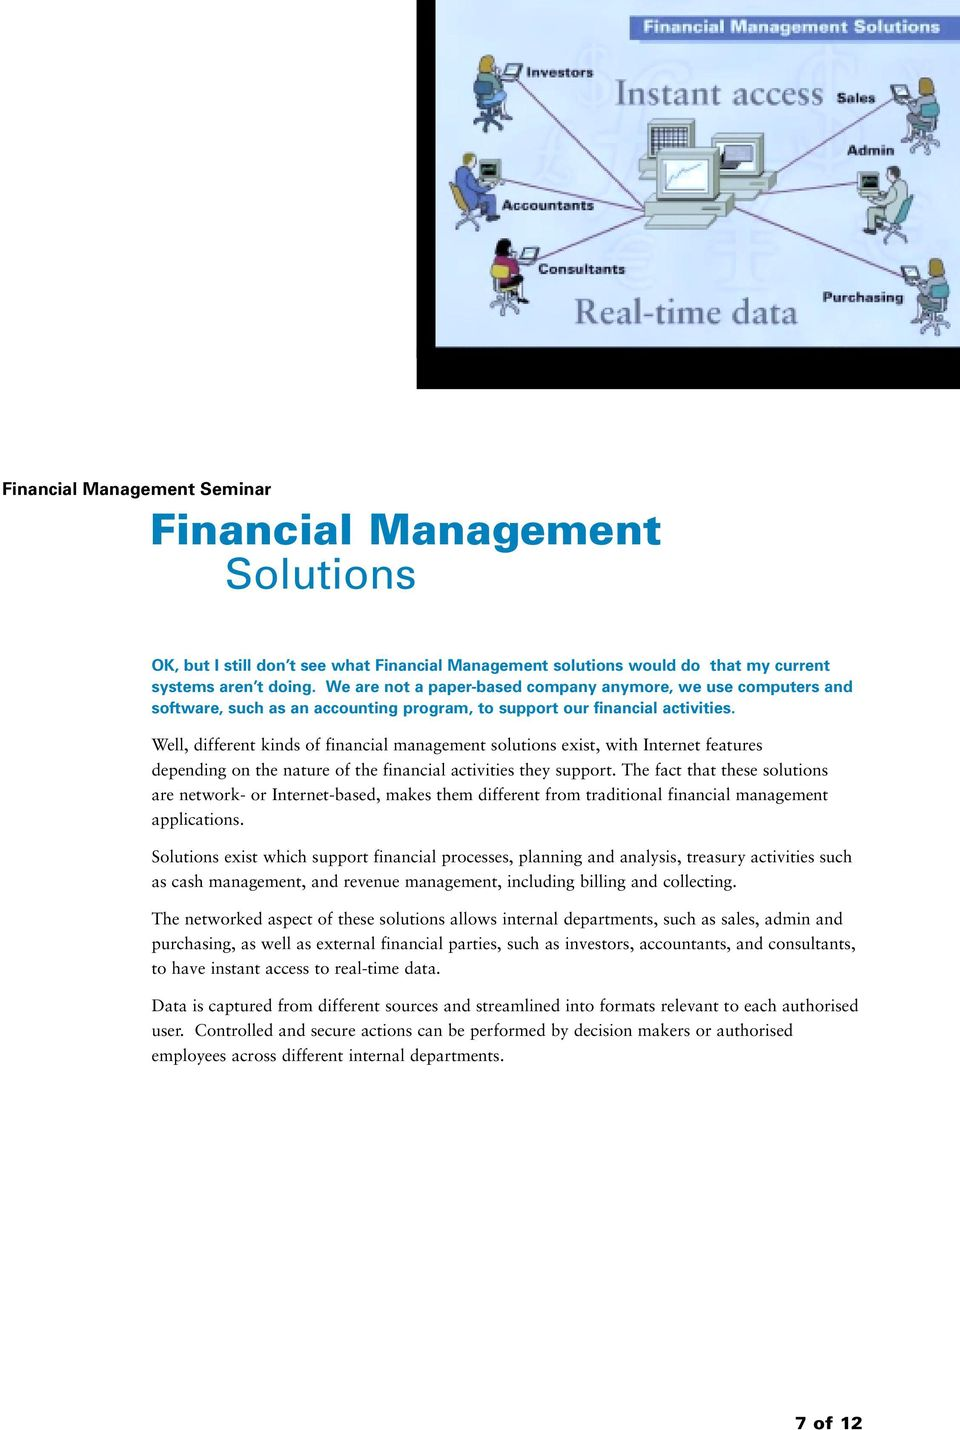 Well, different kinds of financial management solutions exist, with Internet features depending on the nature of the financial activities they support.